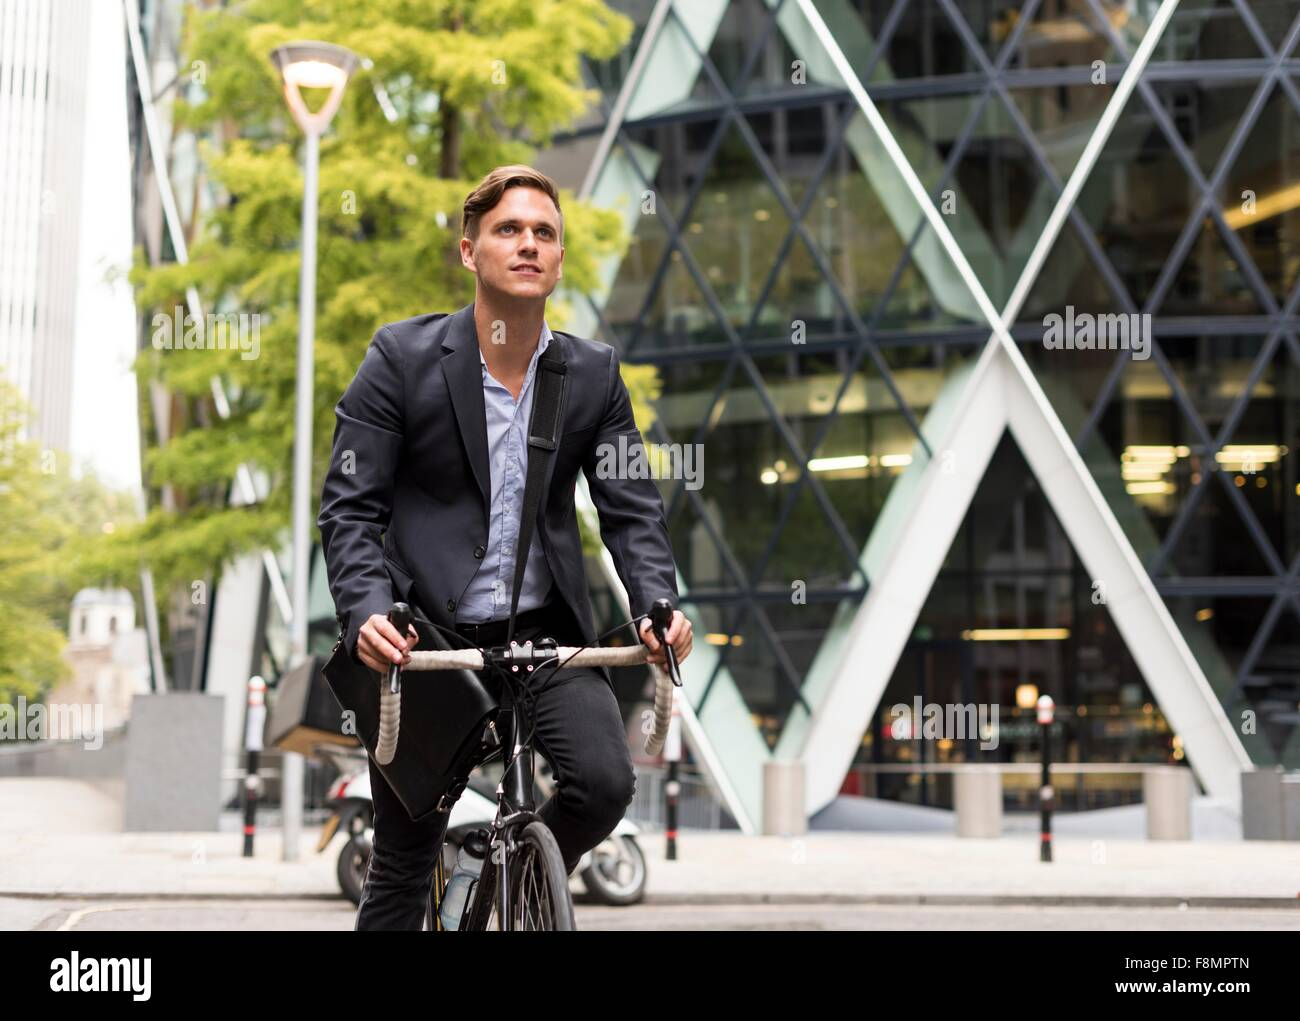 Businessman on bike, 30 St Mary Axe in background, London, UK - Stock Image